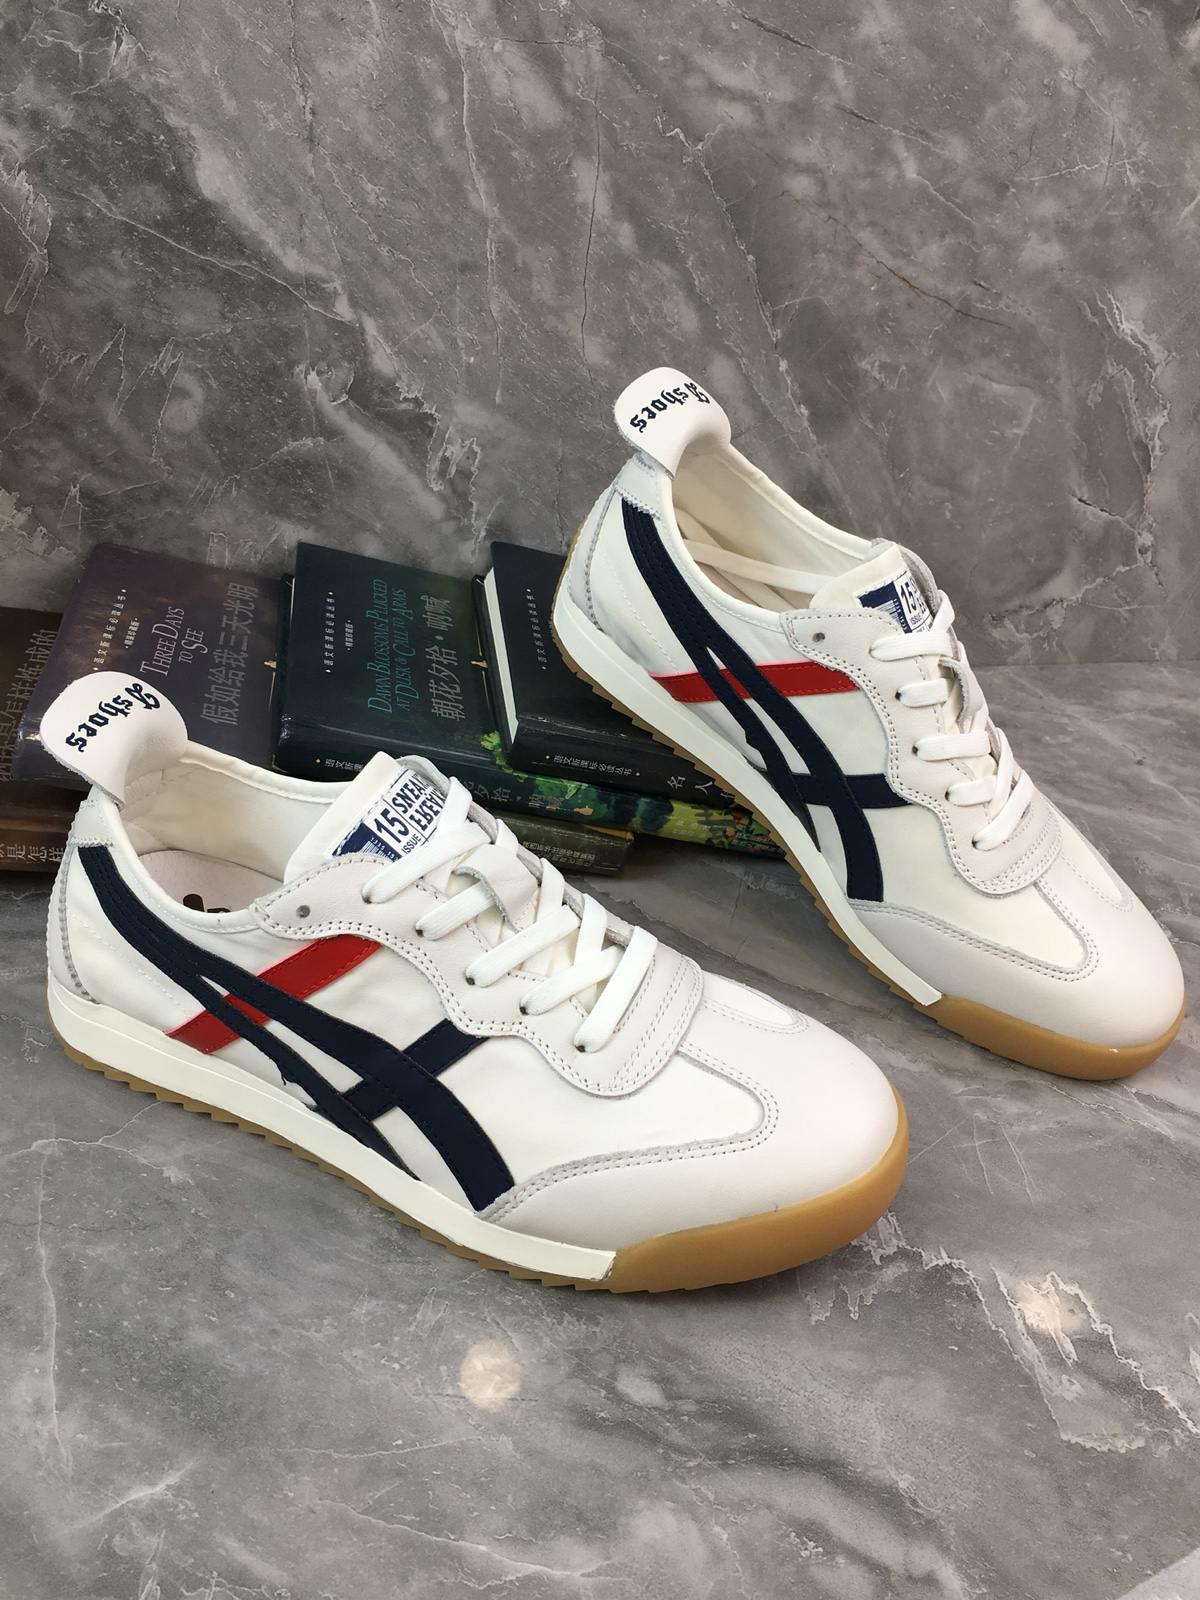 [West Asia pictures] 20 years new leisure shoes, sports shoes, versatile shoes, fashionable shoes, small white shoes, mens shoes, real leather shoes